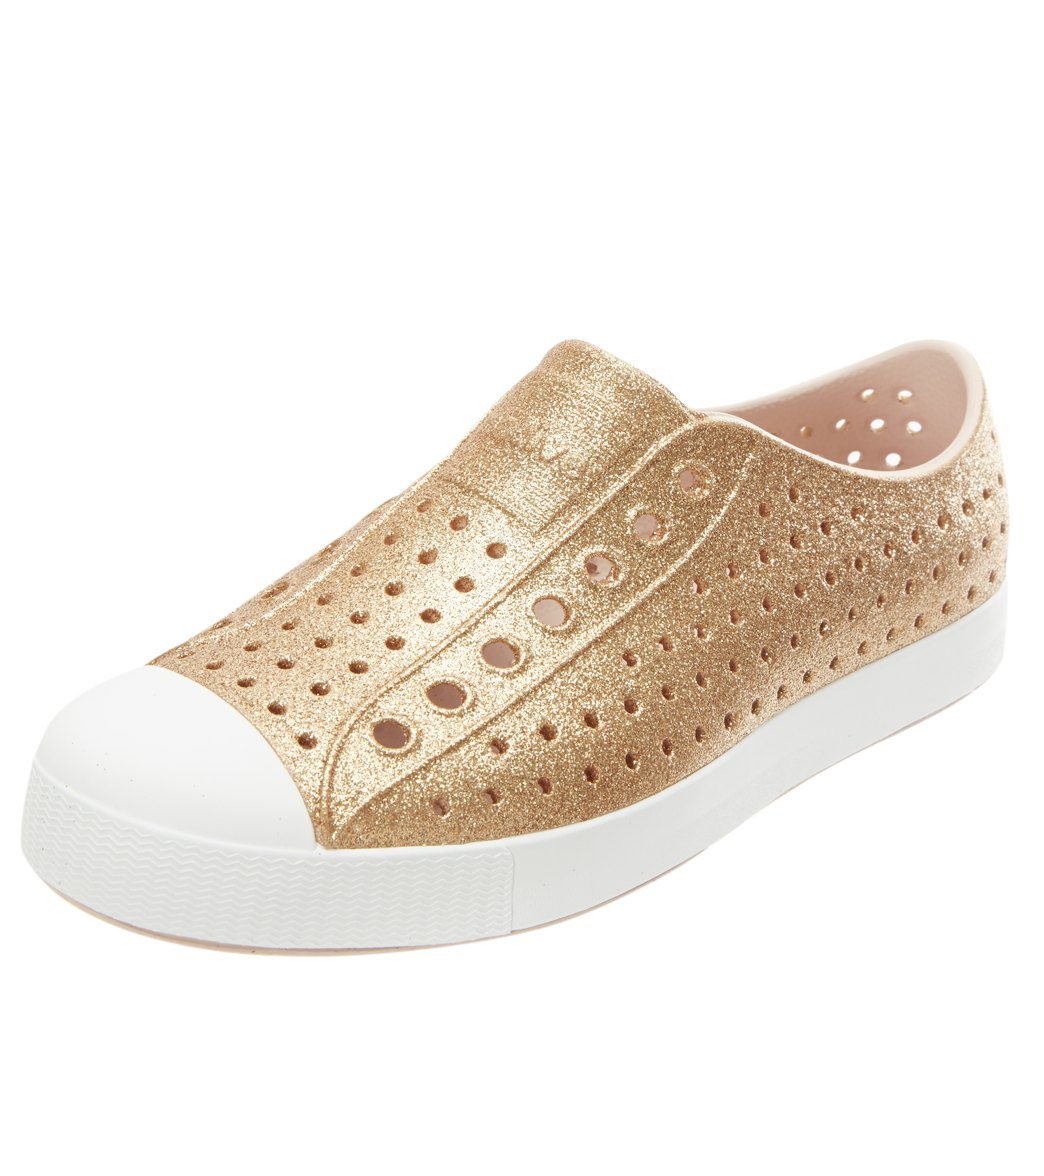 f5c3308453f92 Native Jefferson Bling Water Shoe at SwimOutlet.com - Free Shipping